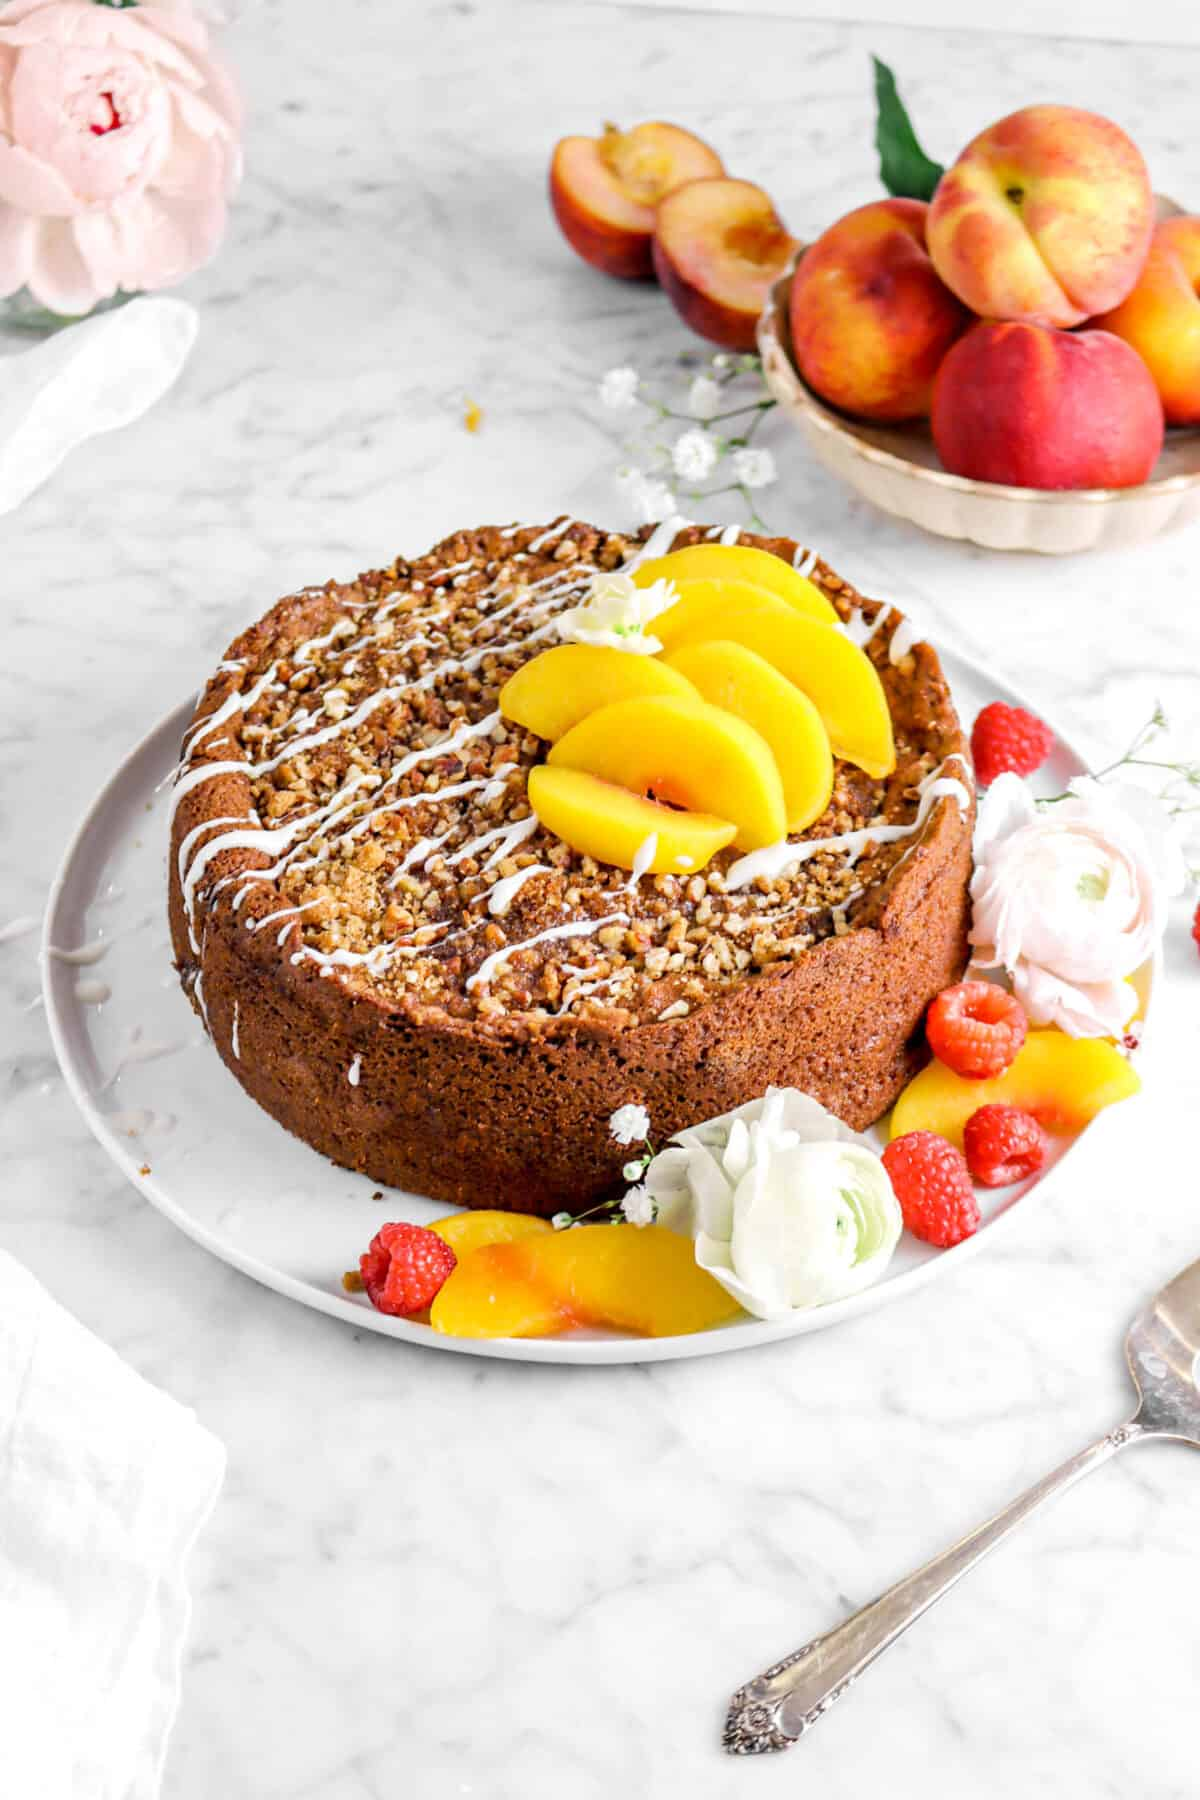 peach cobbler coffee cake on plate with peach slices, flowers, fresh raspberries, and whole peaches behind